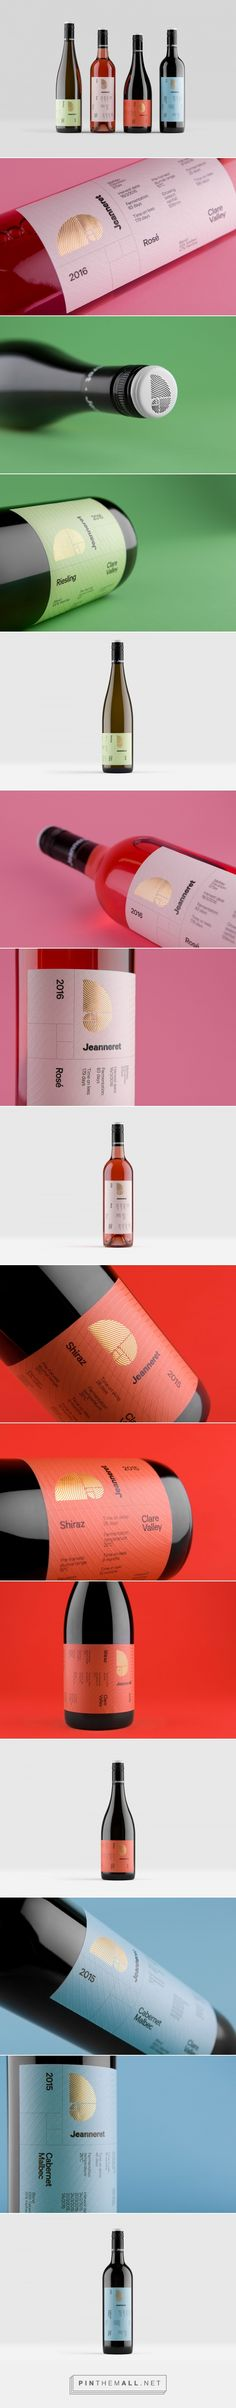 Jeanneret Wines - Packaging of the World - Creative Package Design Gallery - http://www.packagingoftheworld.com/2018/01/jeanneret-wines.html